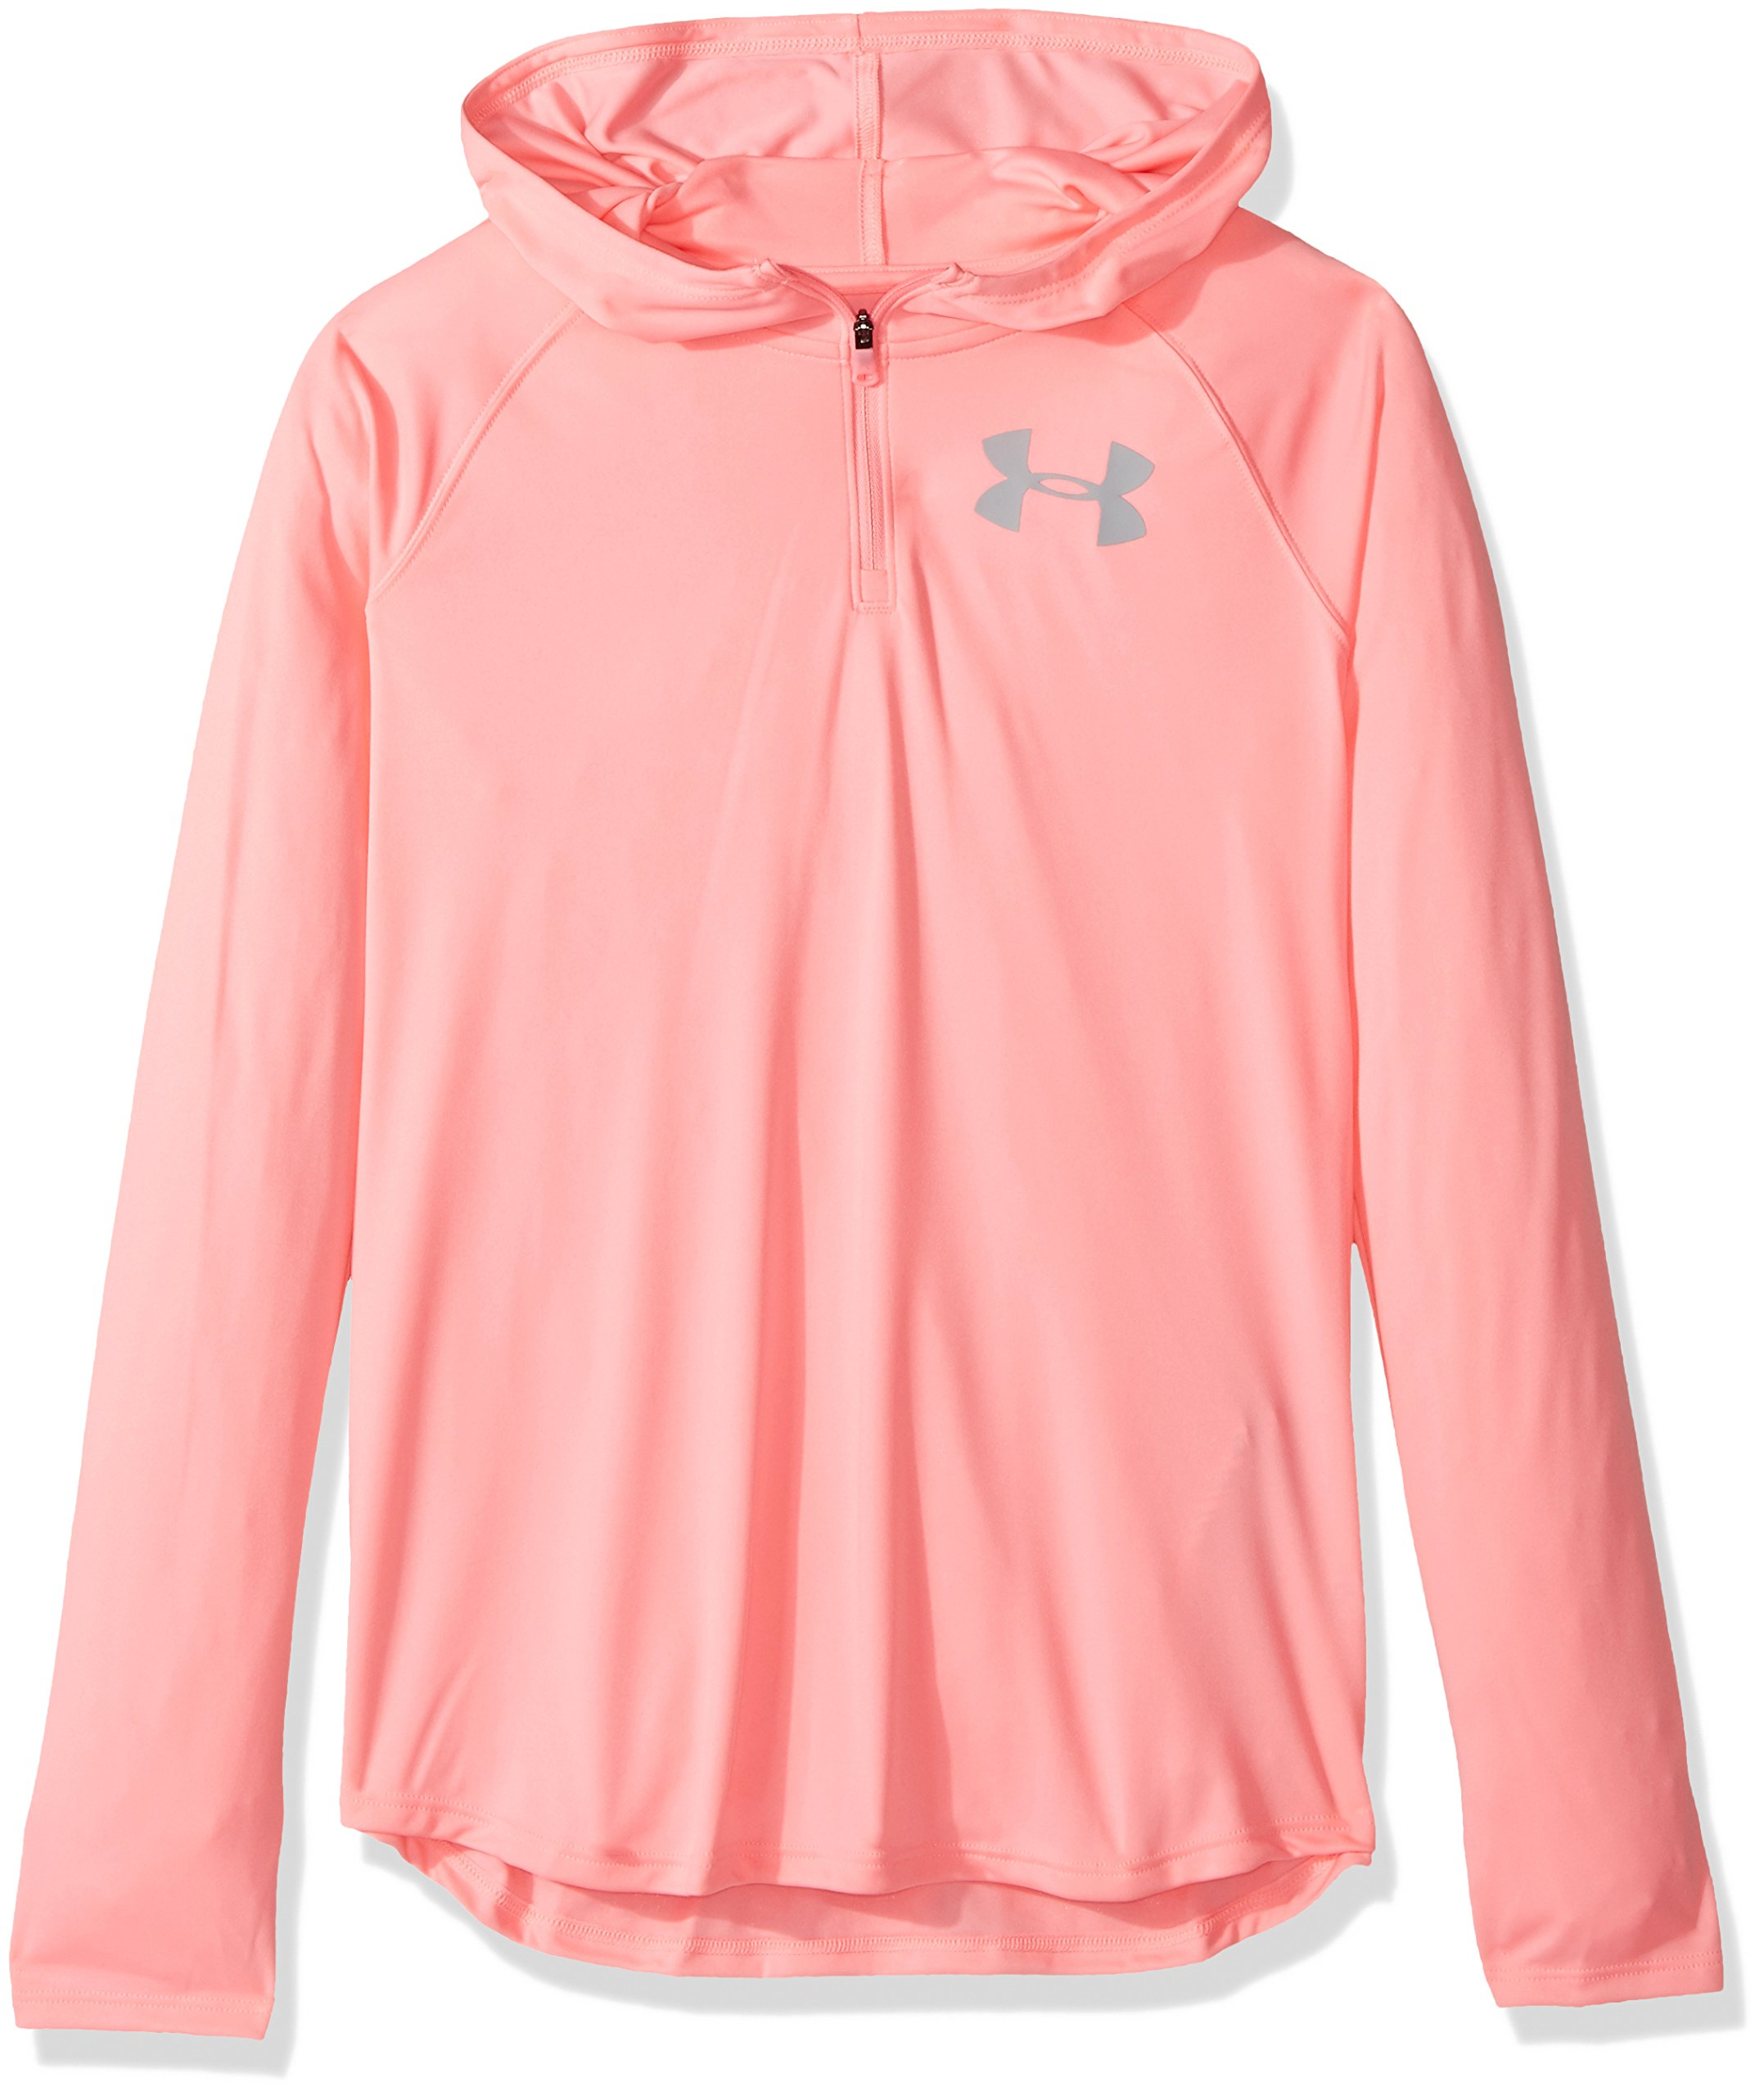 Under Armour Girls' Tech 1/4 Zip Hoody,Pop Pink (979)/Overcast Gray, Youth Small